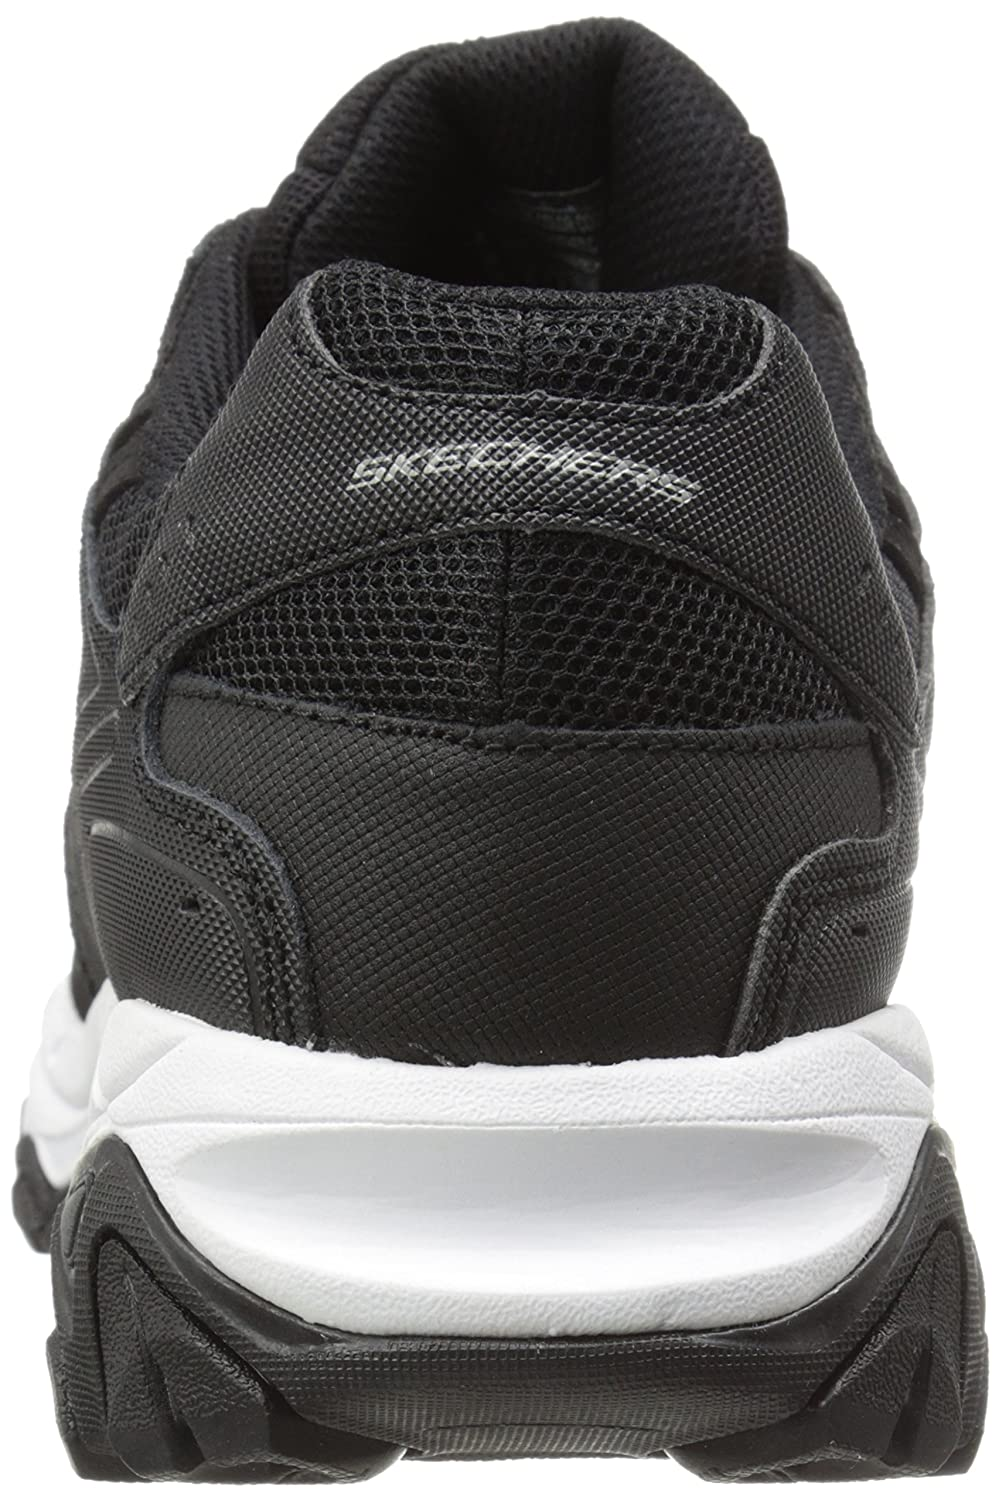 Skechers-Afterburn-Memory-Foam-M-Fit-Men-039-s-Sport-After-Burn-Sneakers-Shoes thumbnail 20